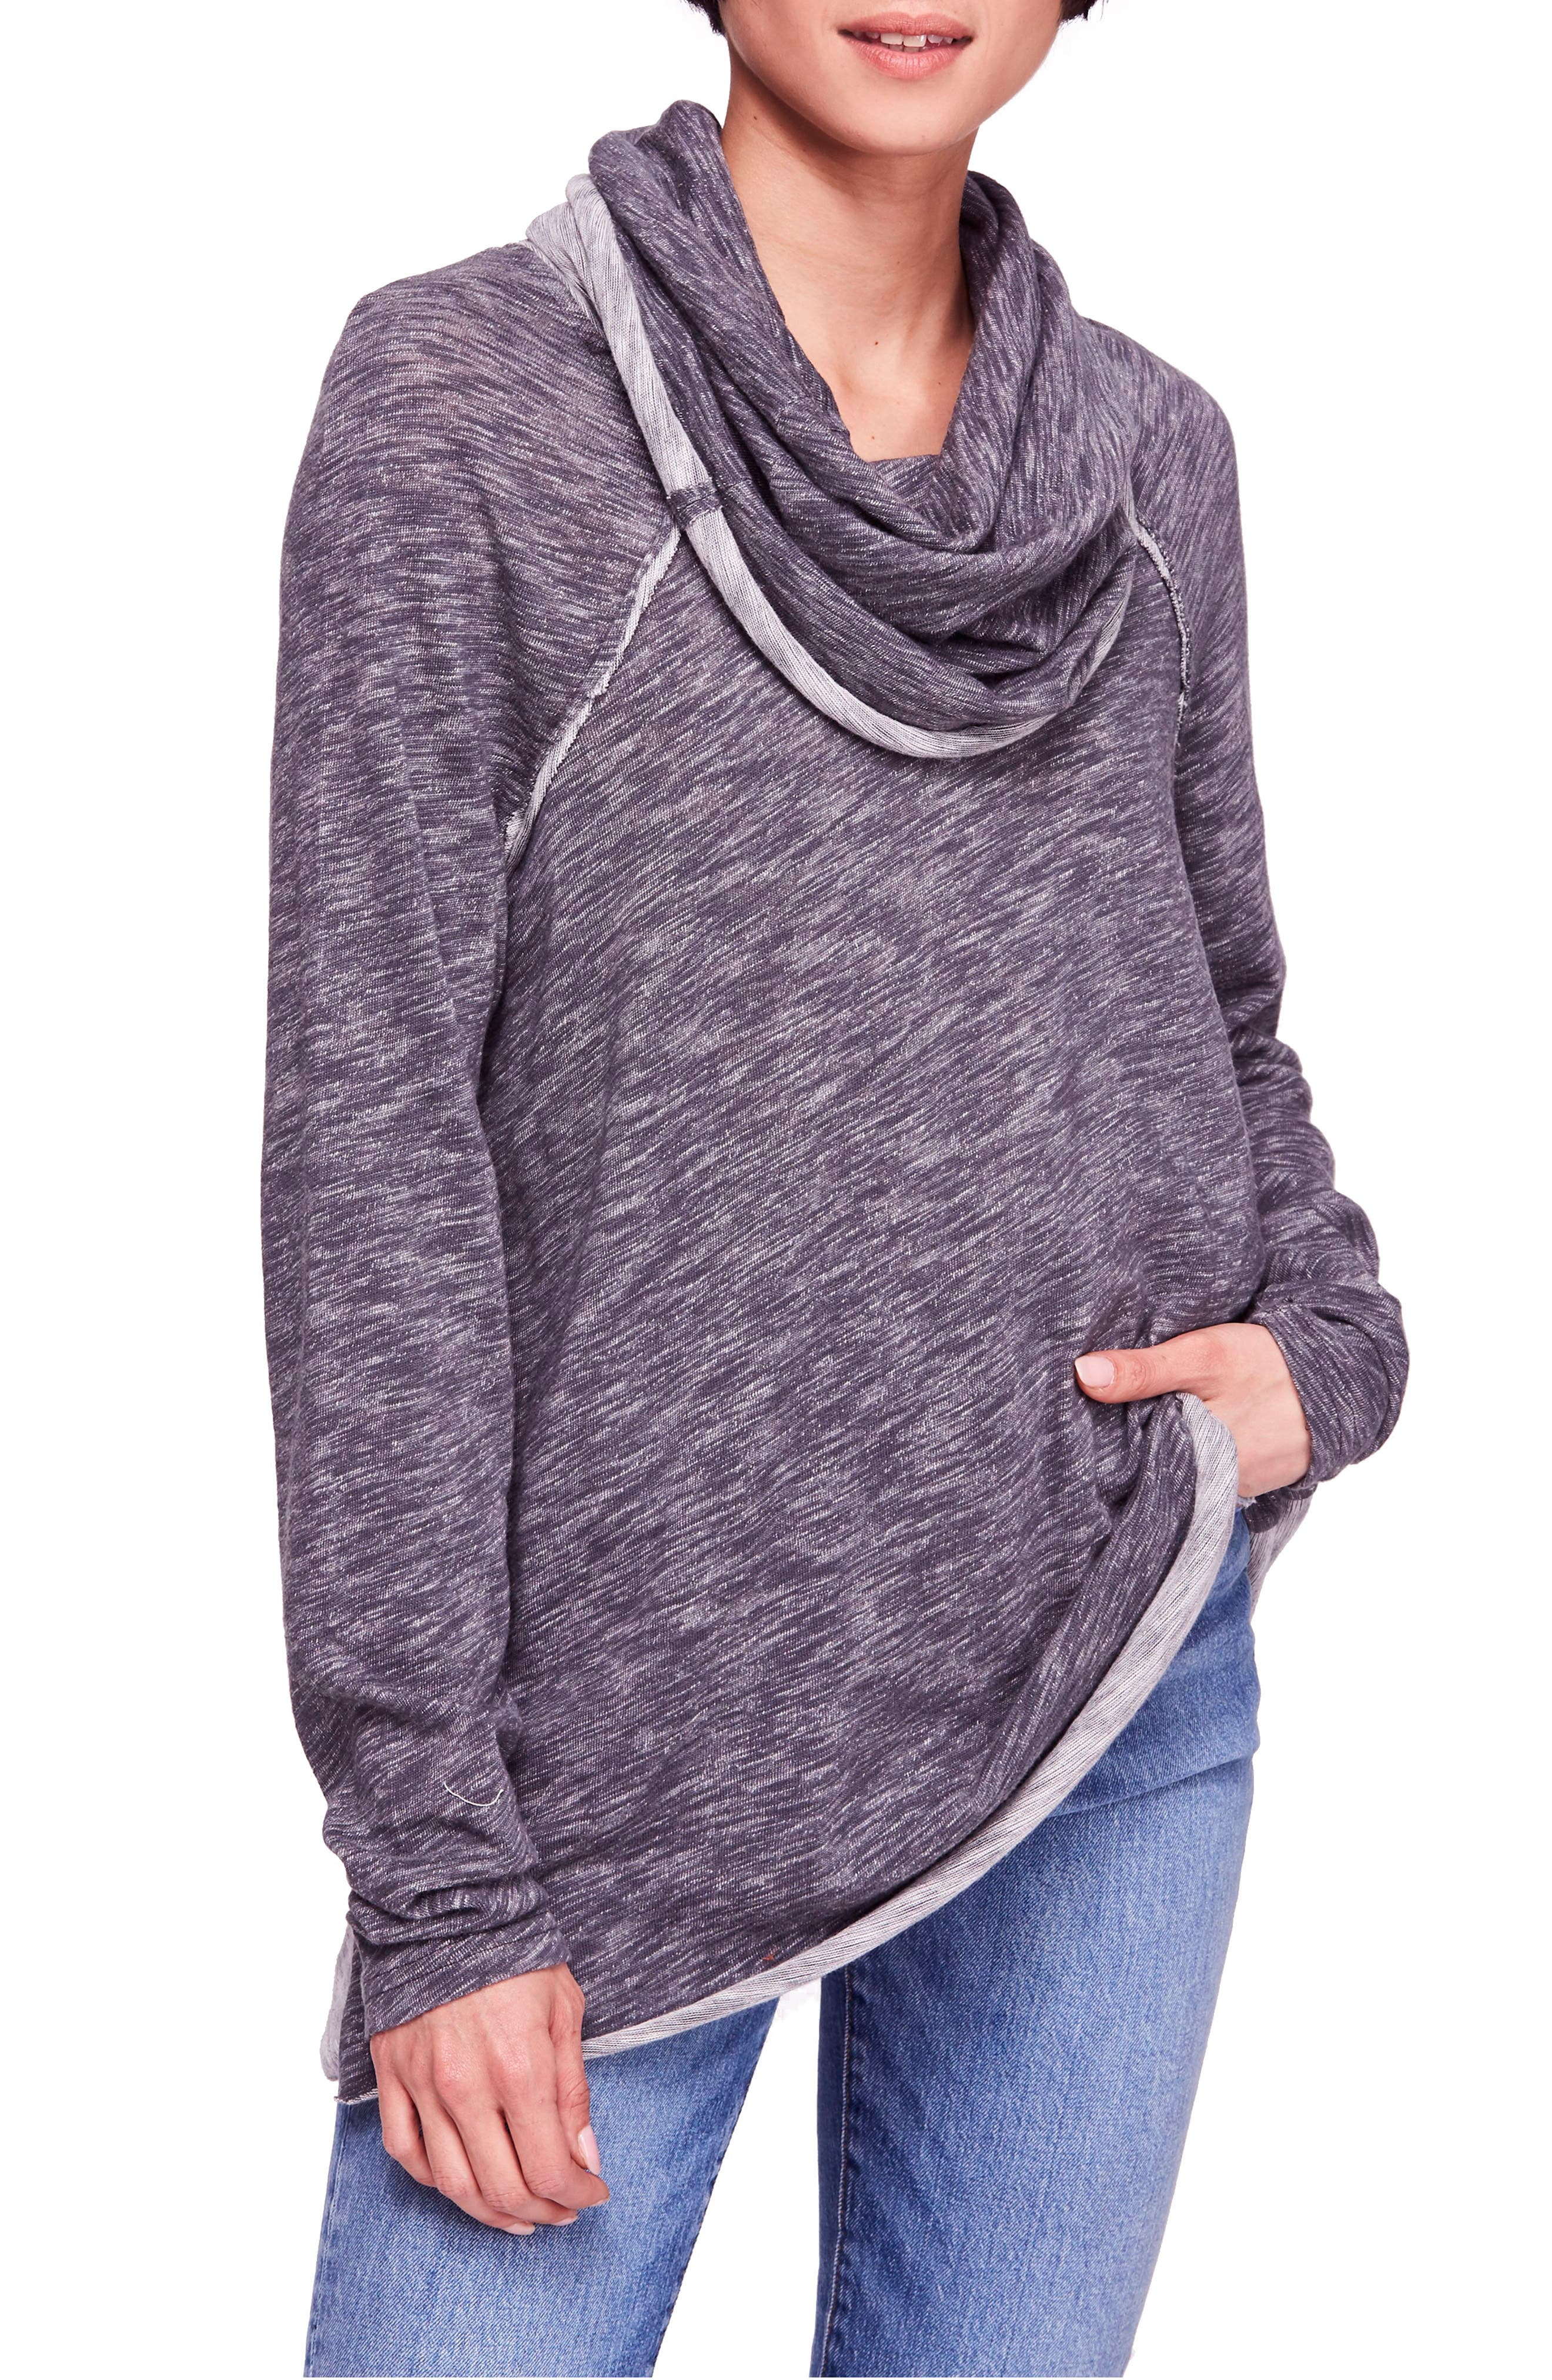 Cocoon Cowl Neck Top,                         Main,                         color, Charcoal